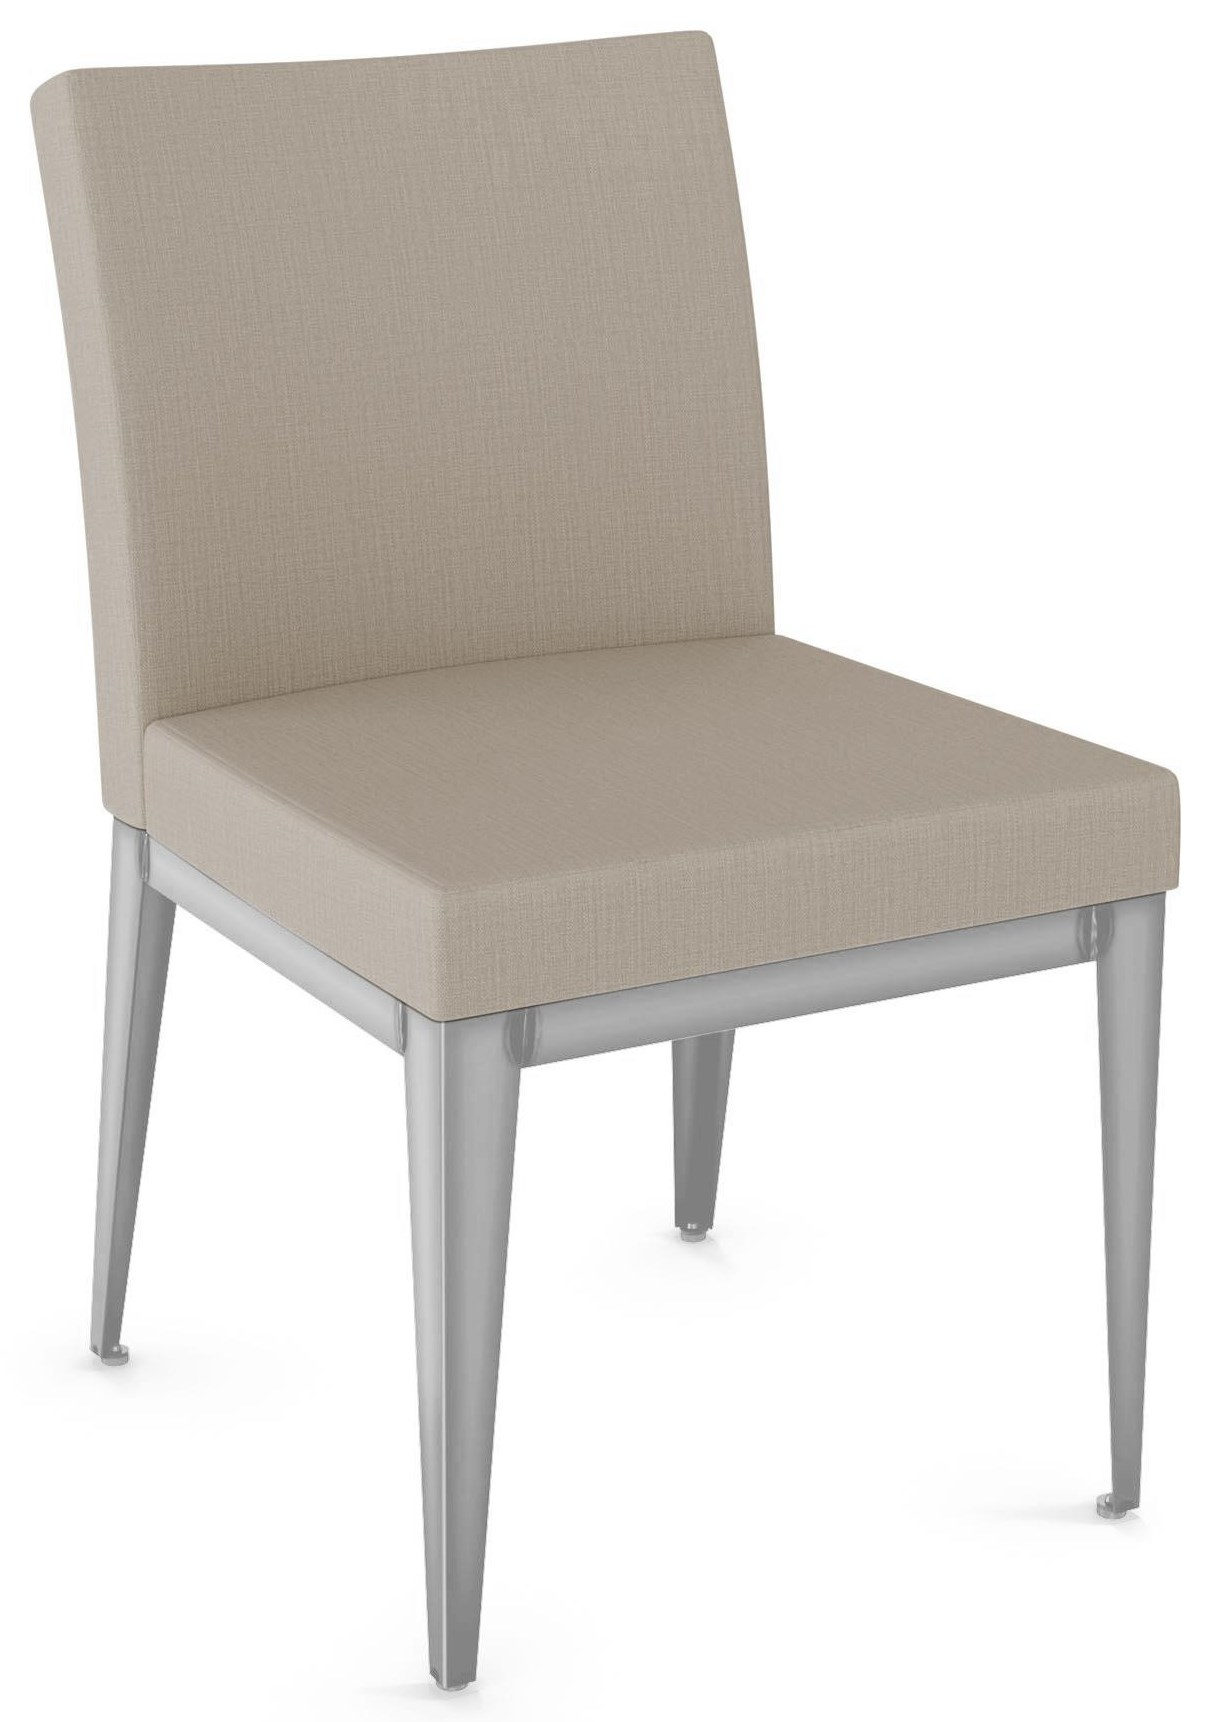 Pablo Chair by Amisco at Red Knot